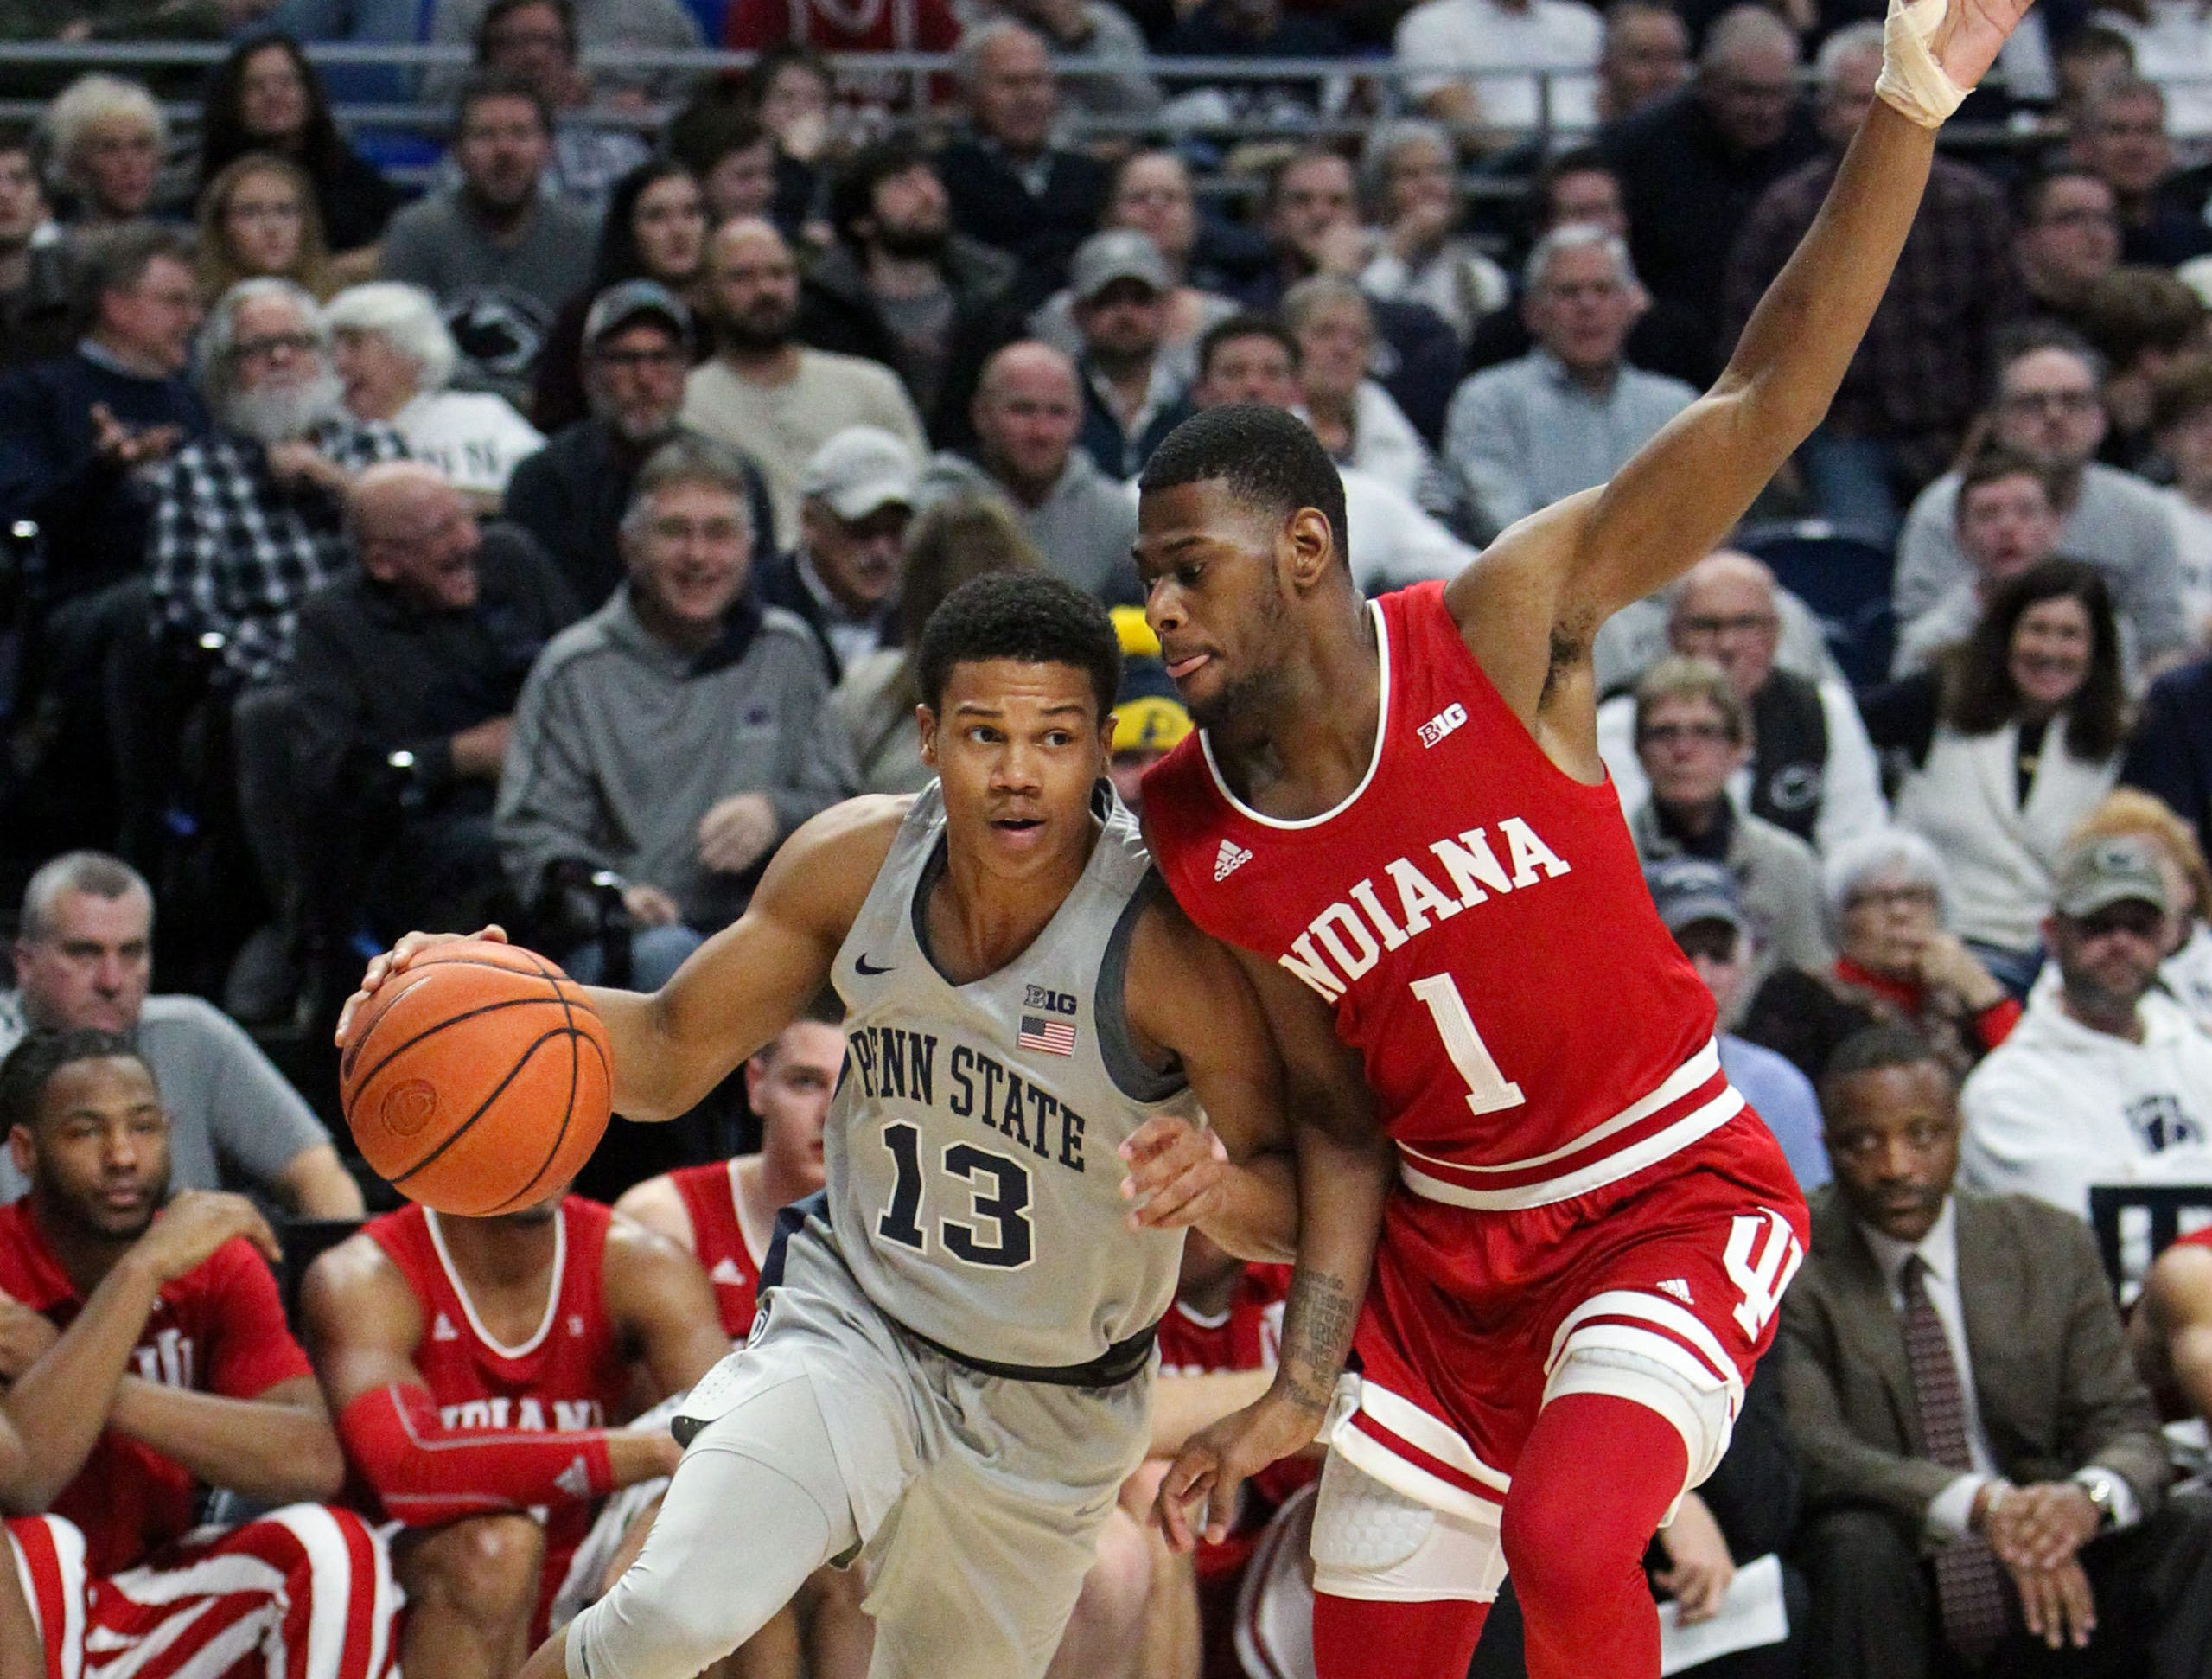 Dec 4, 2018; University Park, PA, USA; Penn State Nittany Lions guard Rasir Bolton (13) dribbles the ball against Indiana Hoosiers guard Aljami Durham (1) during the first half at Bryce Jordan Center. Indiana defeated Penn State 64-62. Mandatory Credit: Matthew O'Haren-USA TODAY Sports